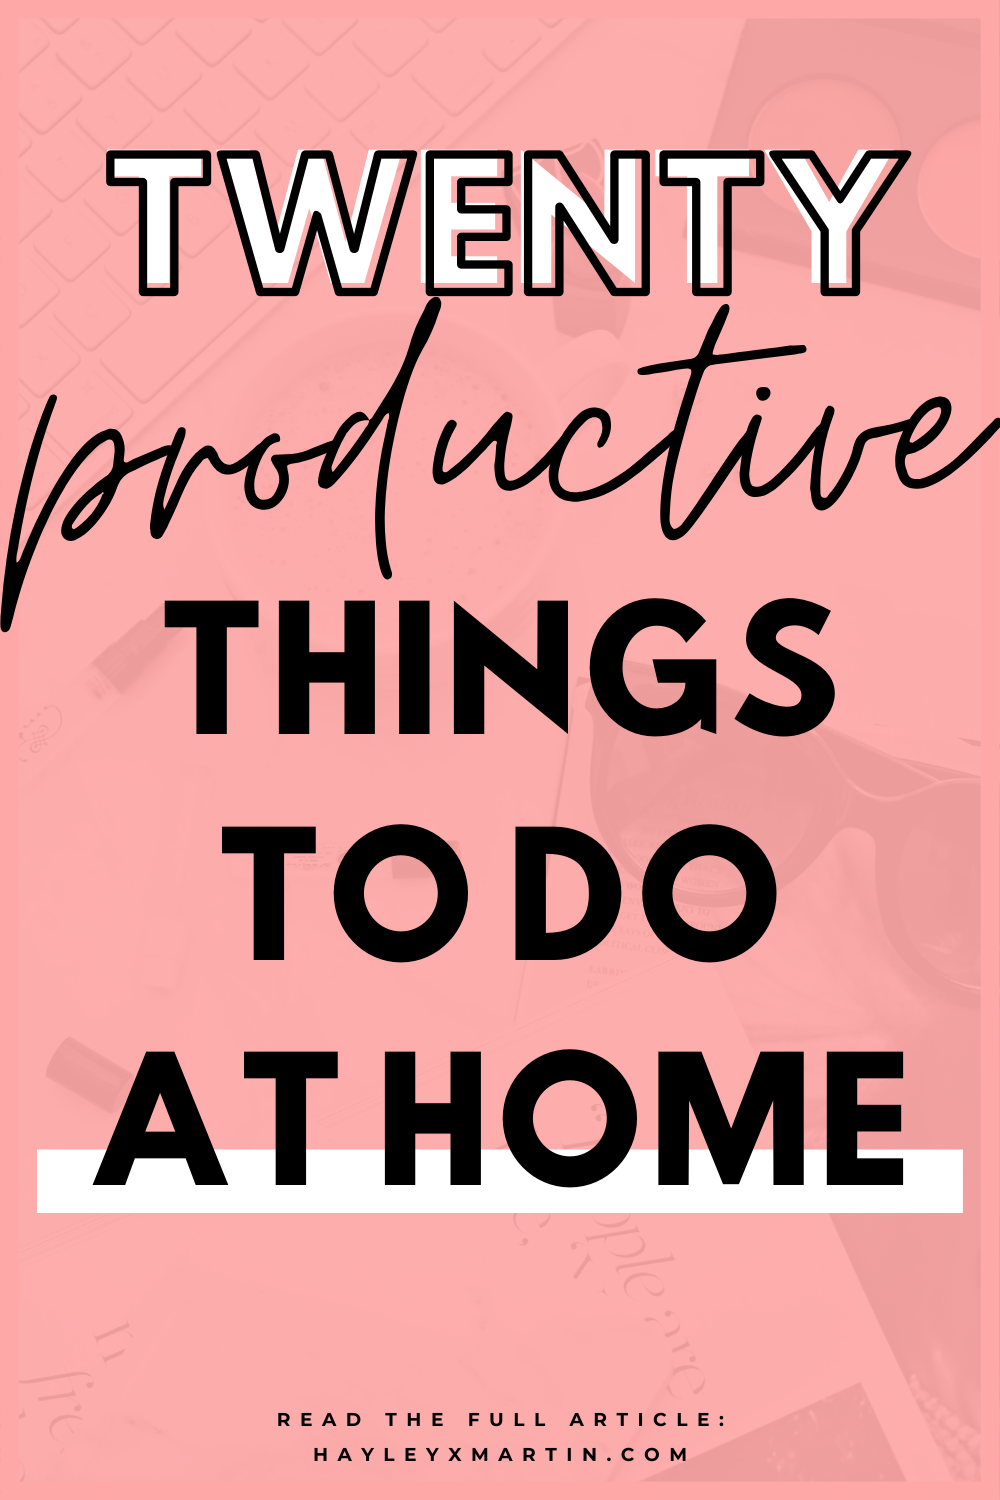 TWENTY PRODUCTIVE THINGS TO DO AT HOME | HAYLEYXMARTIN